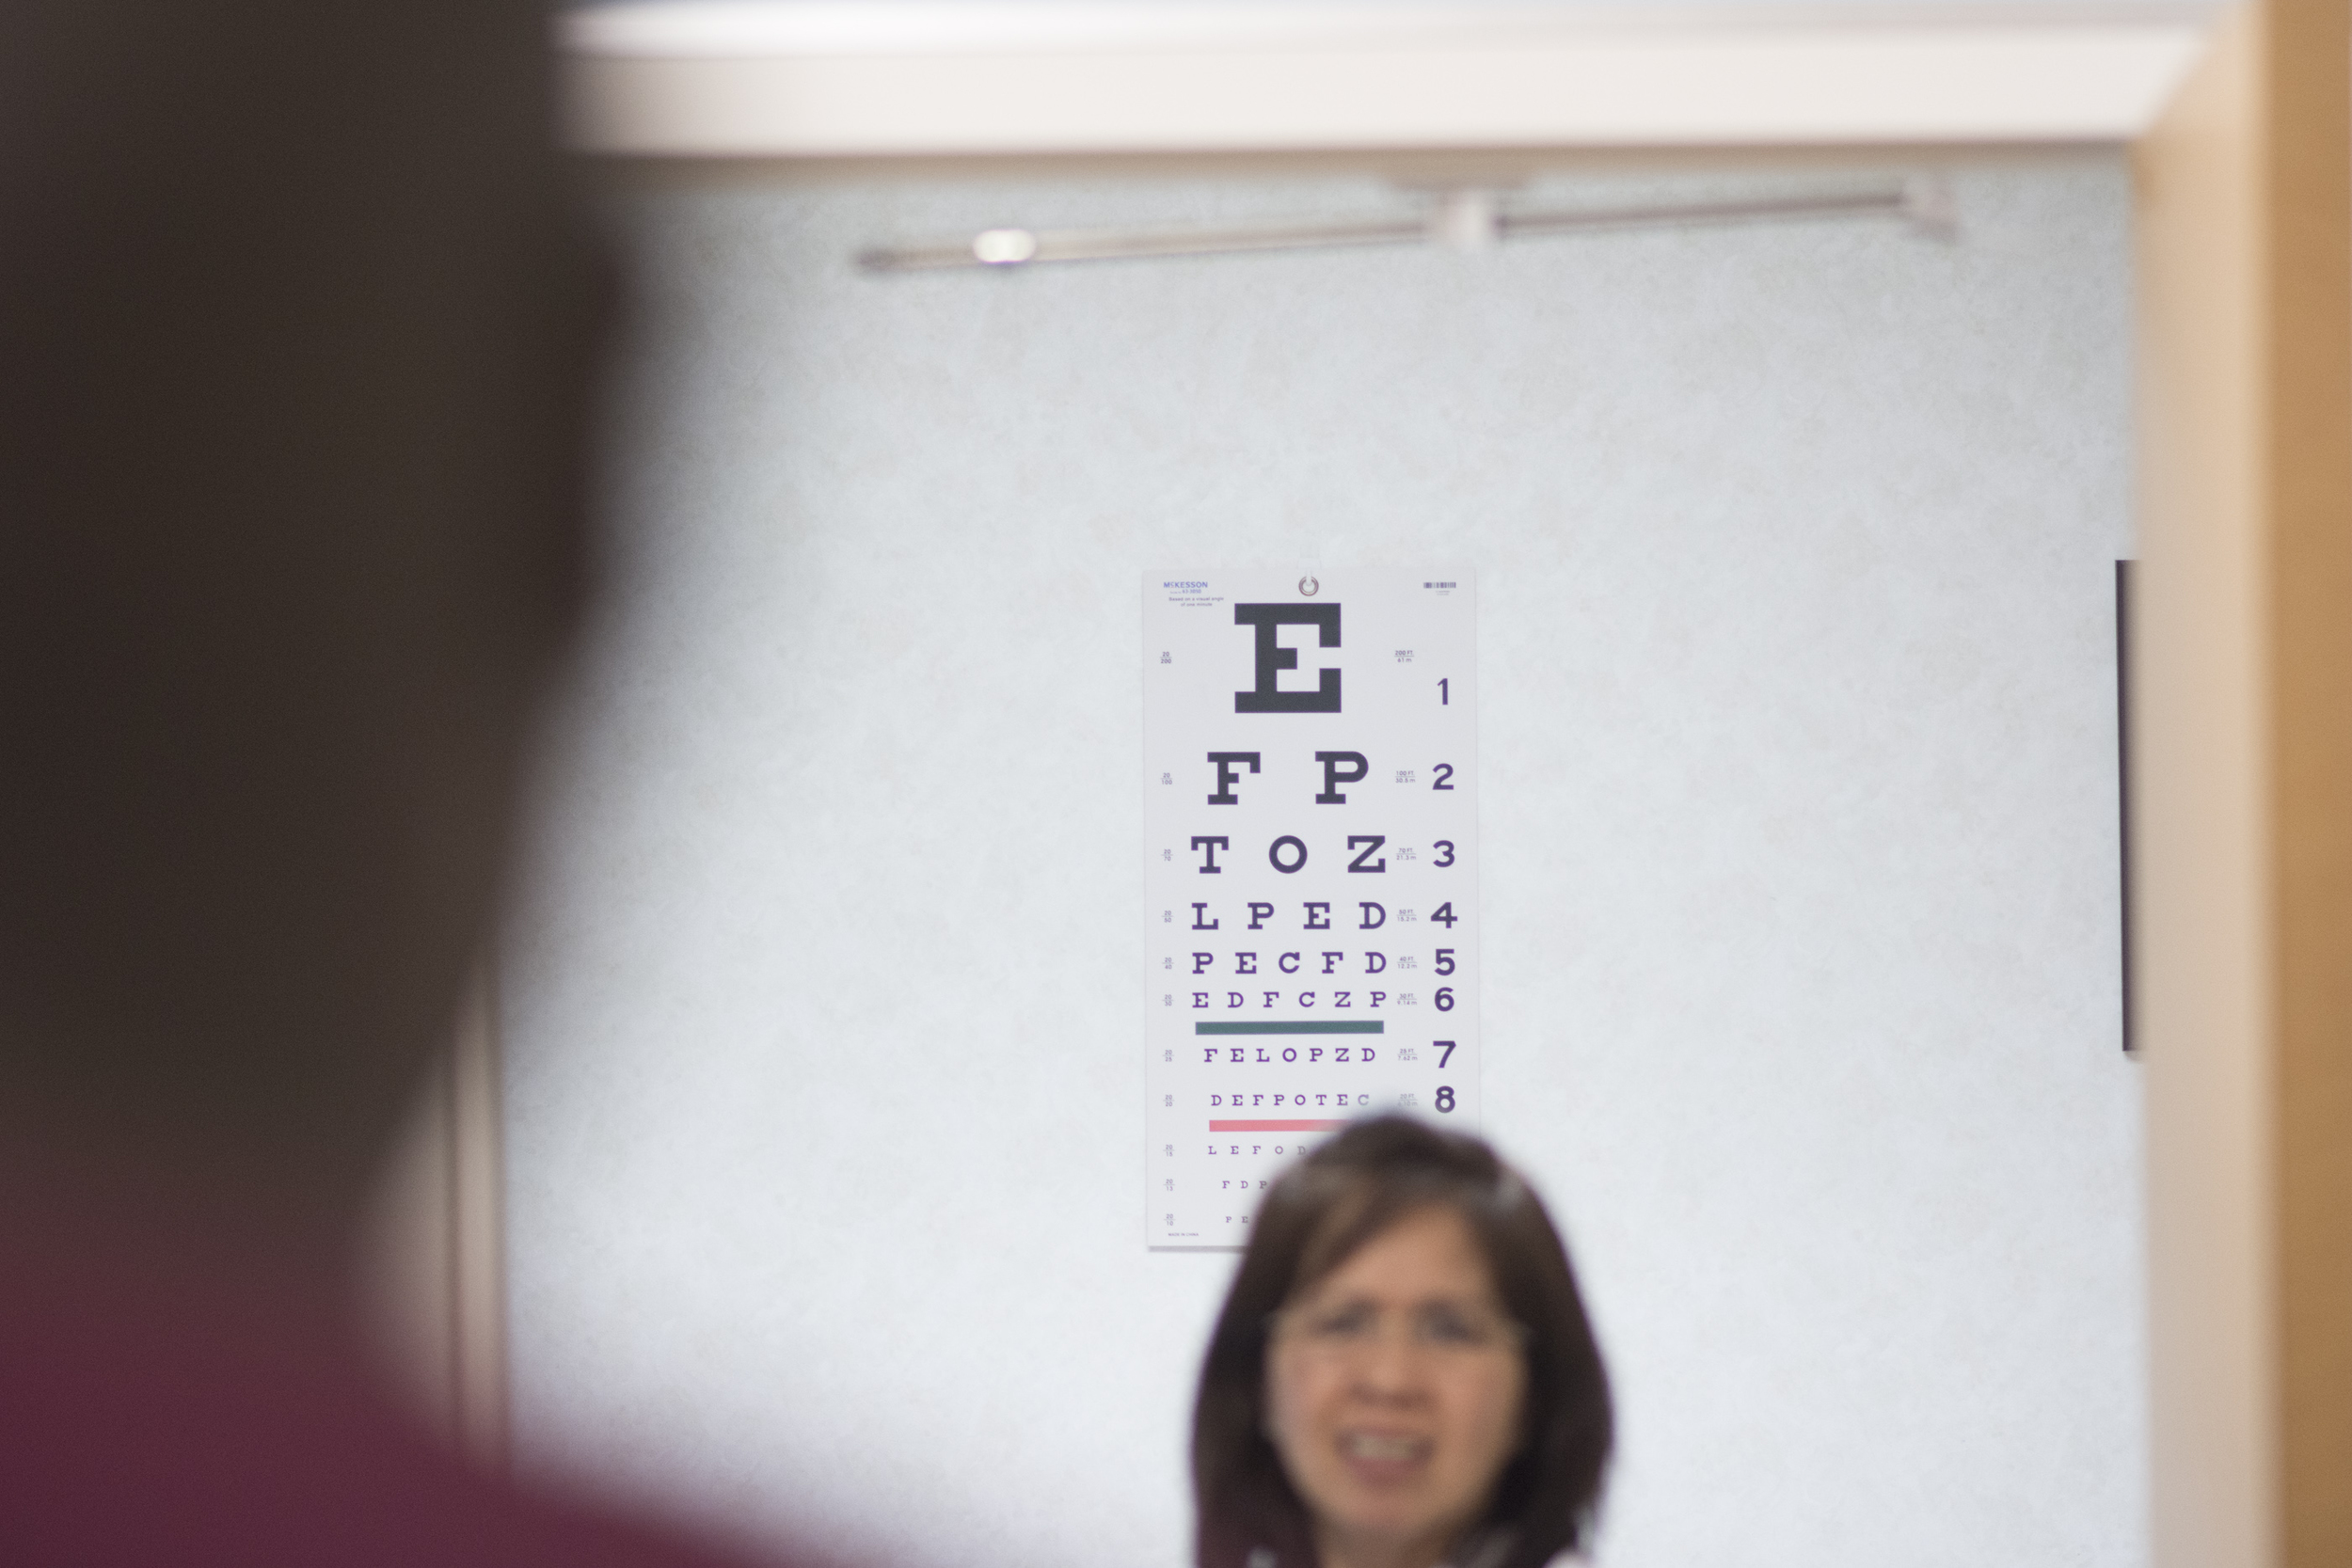 Nurse practitioner Yvette Alto-Buenaflor tests a patient's eyesight at CVS Pharmacy's Minute Clinic at 1825 East Warm Springs Road in Las Vegas, Thursday, Aug. 13, 2015. Howard visits the clinic to have a physical for a driving position with the Department of Transportation. (Jason Ogulnik/Las Vegas Review-Journal)